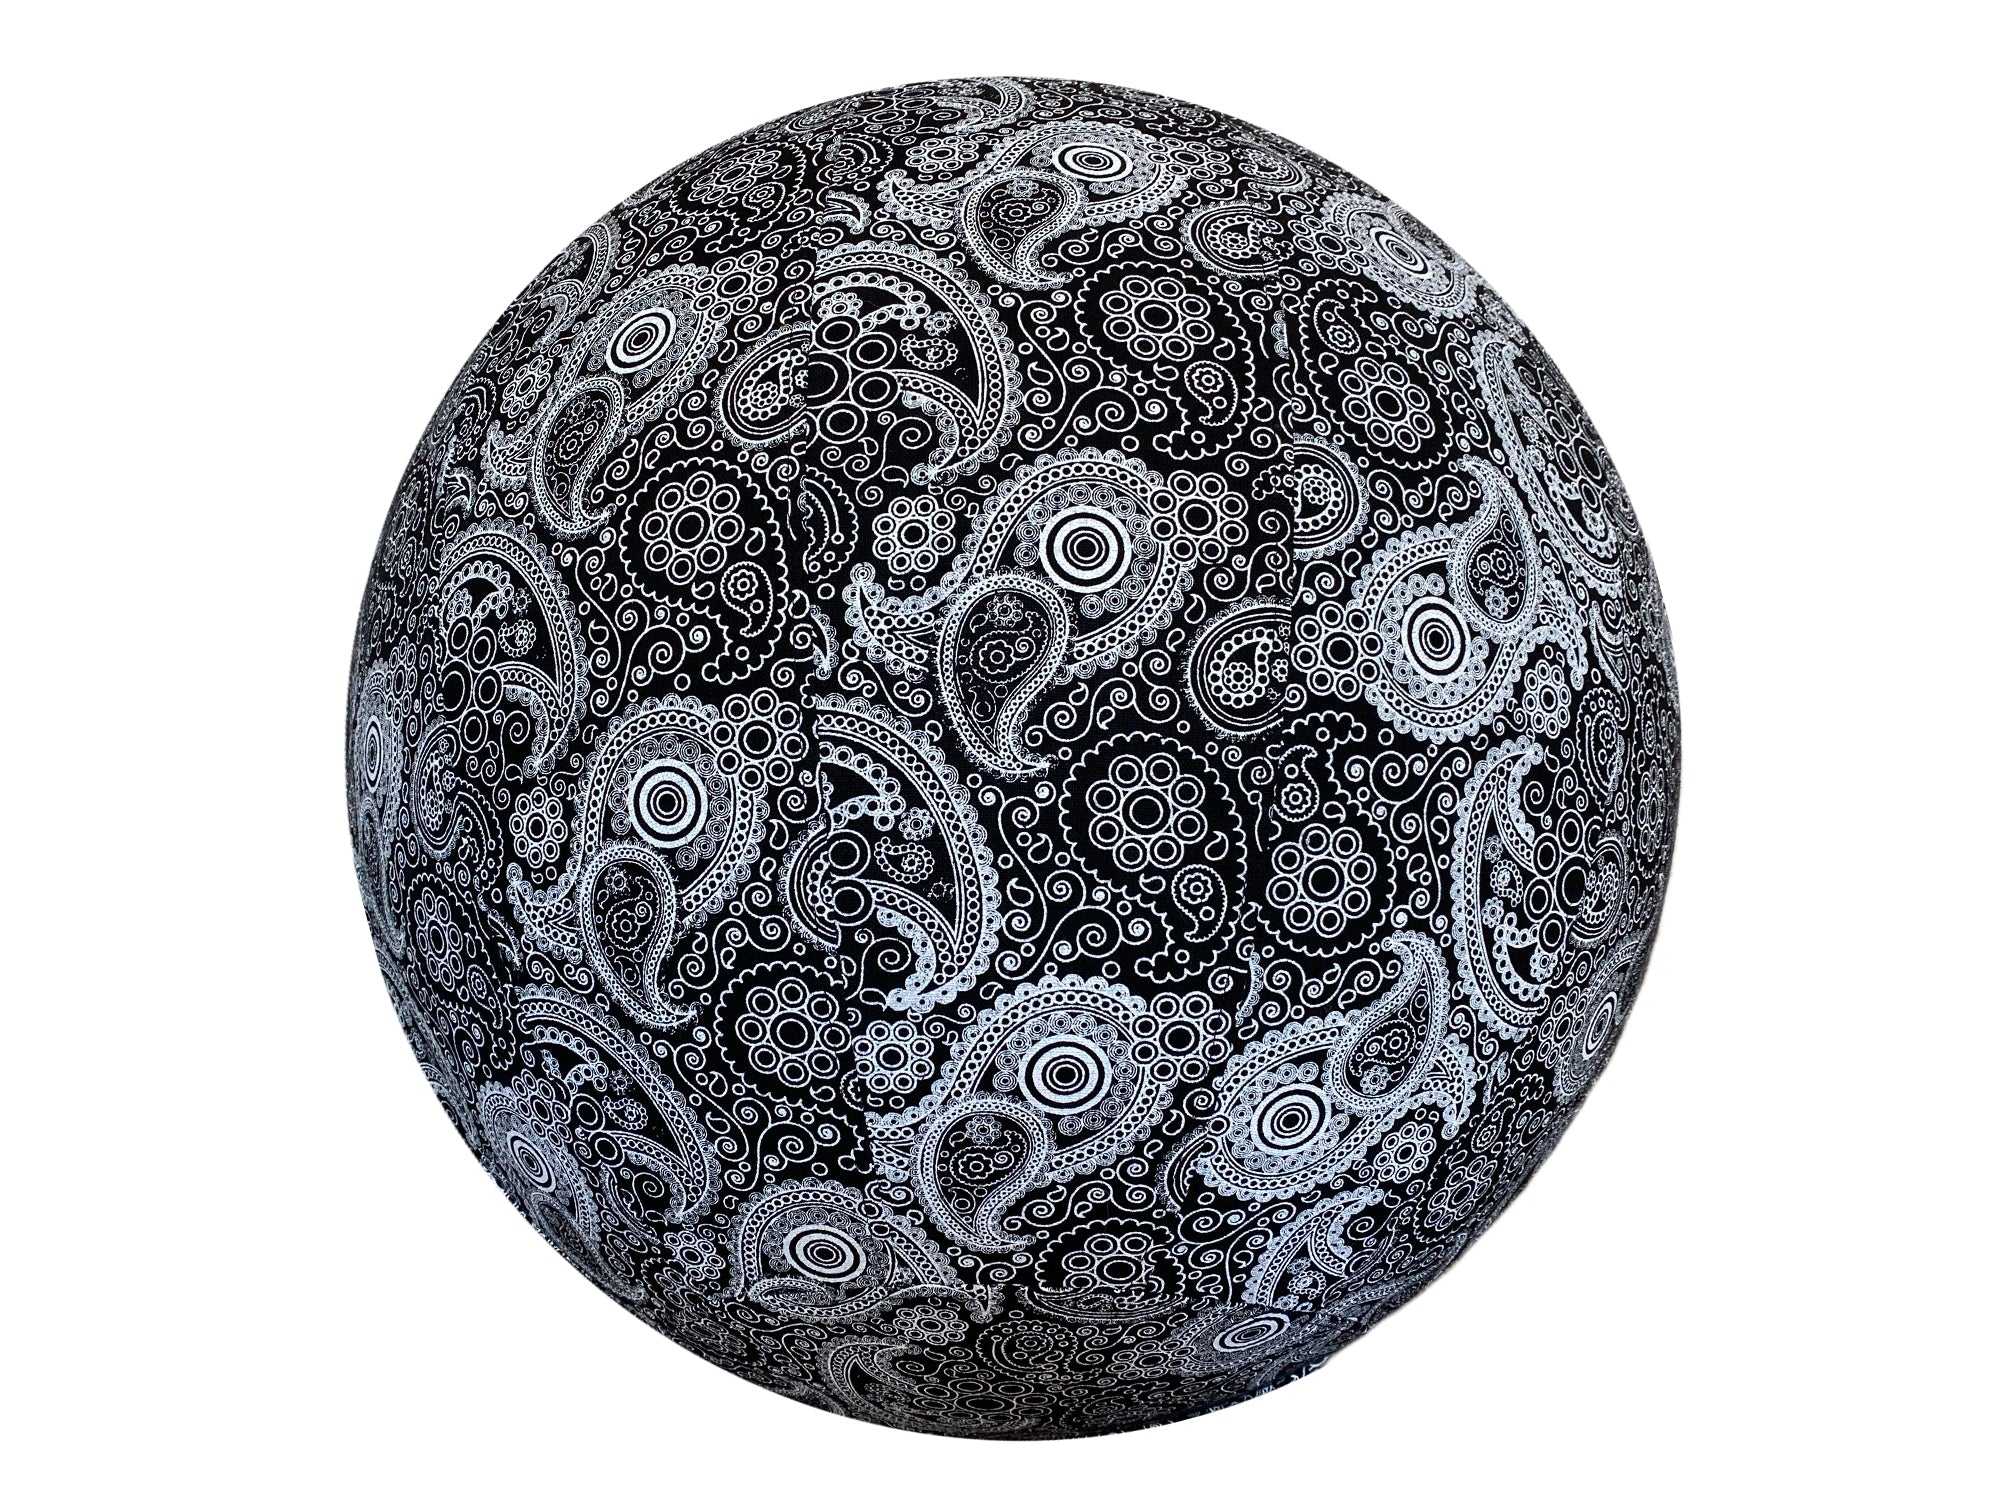 65cm Balance Ball / Yoga Ball Cover: Black Paisley